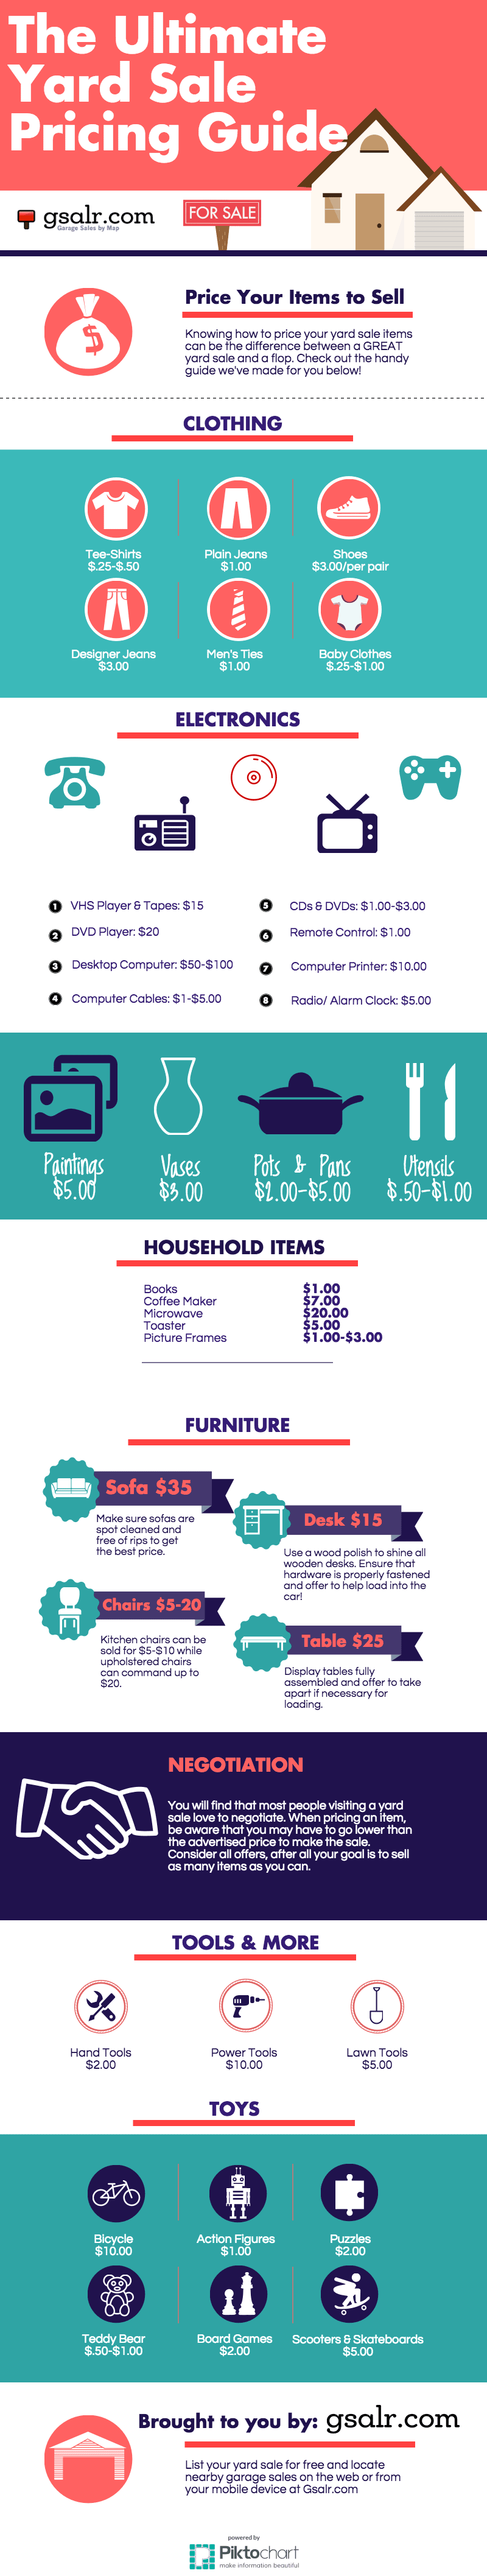 Garage Sale Pricing Guide & Tips for a Successful Garage Sale